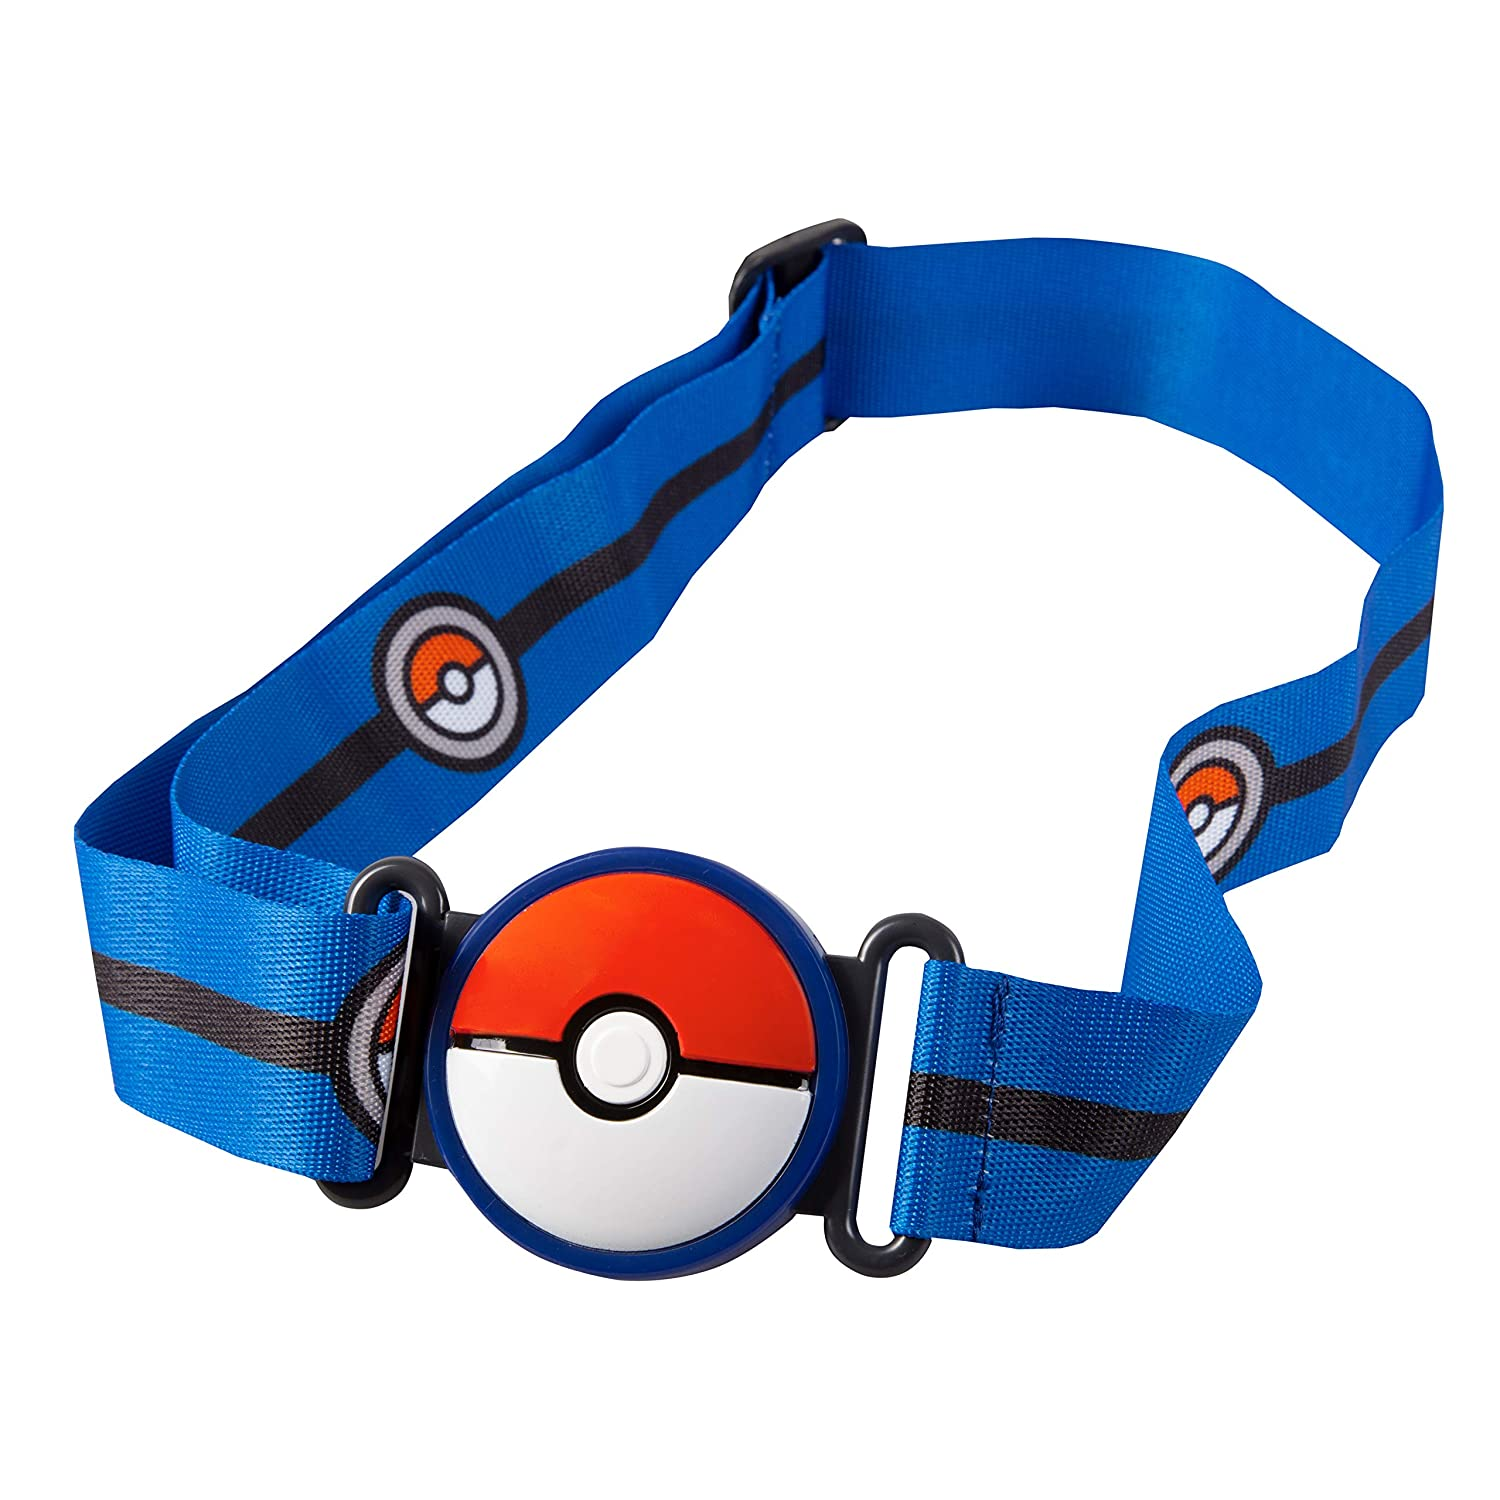 PoK?MoN Clip 'N' Go Belt Set with 3 Pok? Balls & 2 Figures - Includes Pikachu and Cubone Figure - Holds Up to 6 Pokeballs - Ages 4 +